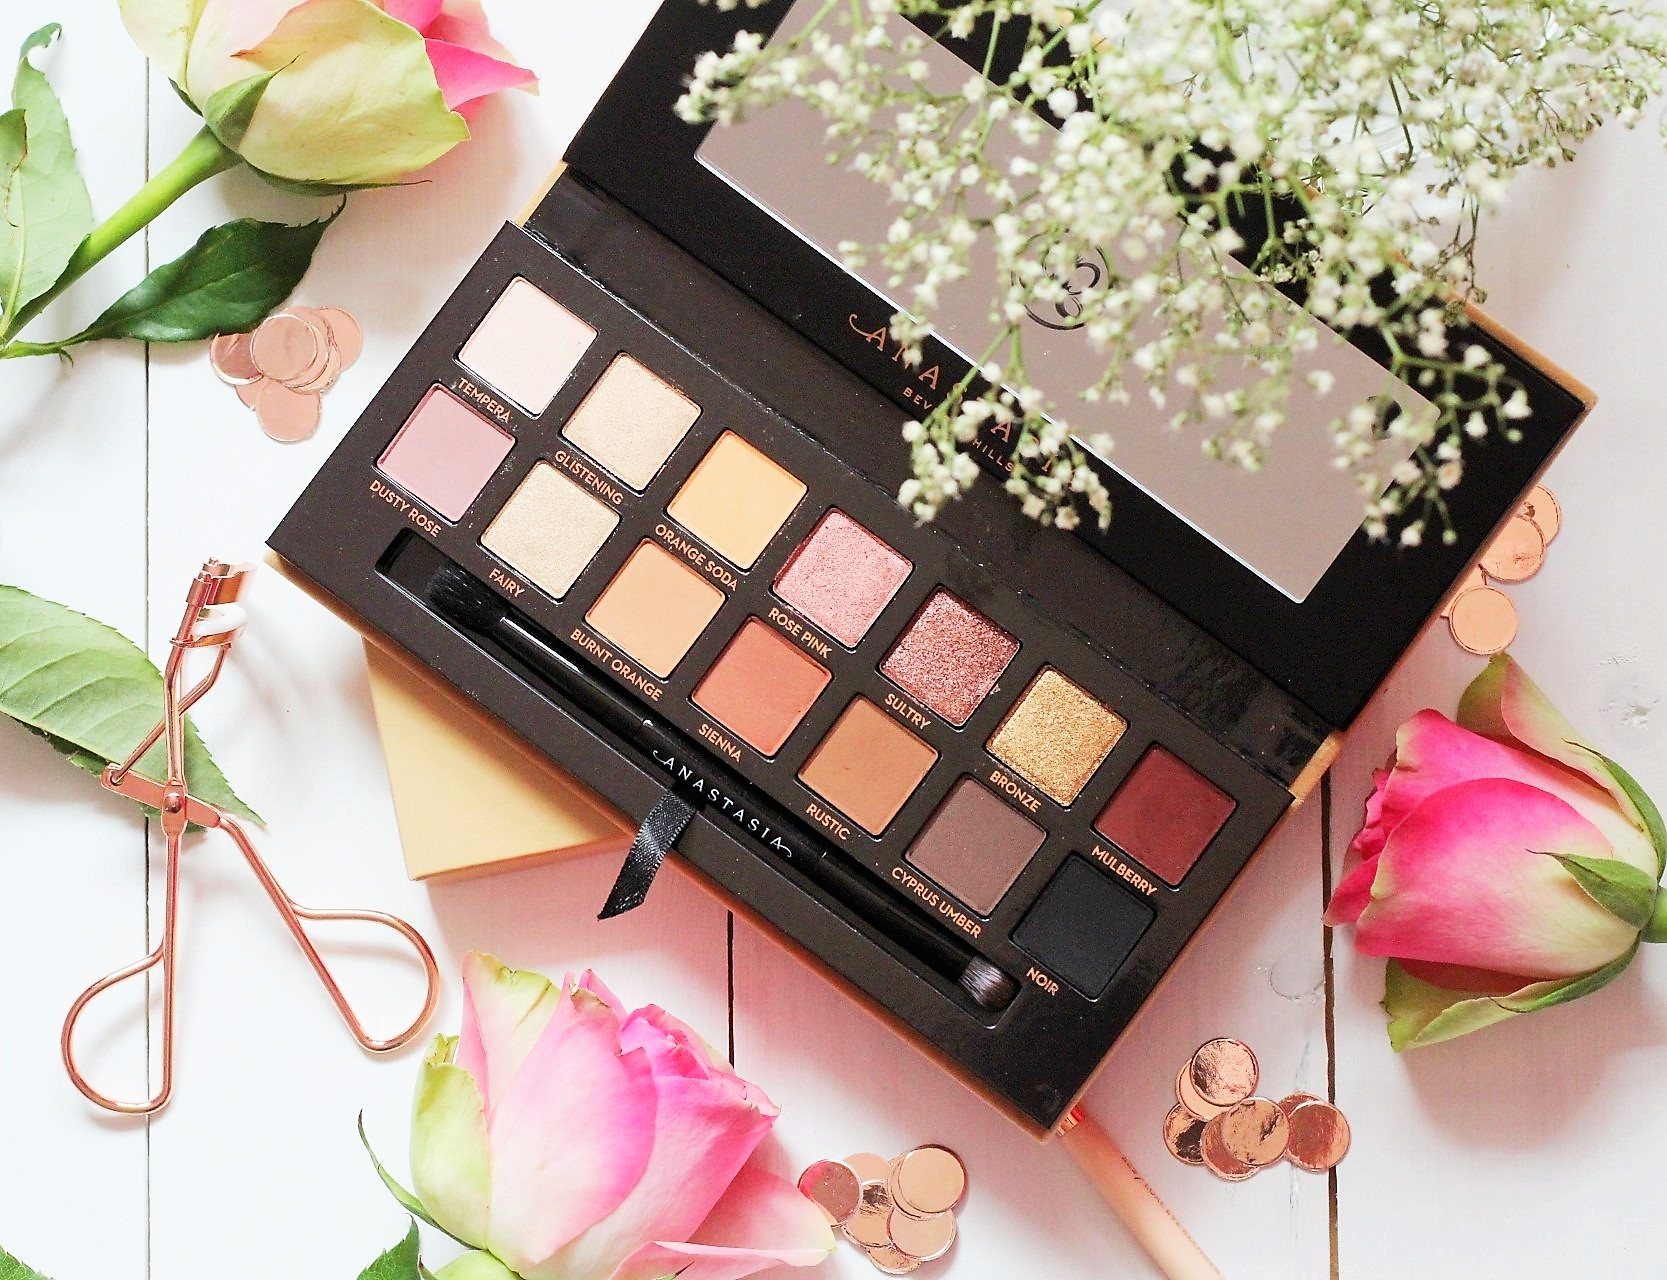 Anastasia Beverly Hills Soft Glam Eyeshadow Palette Review and Swatches 10 (2).jpeg